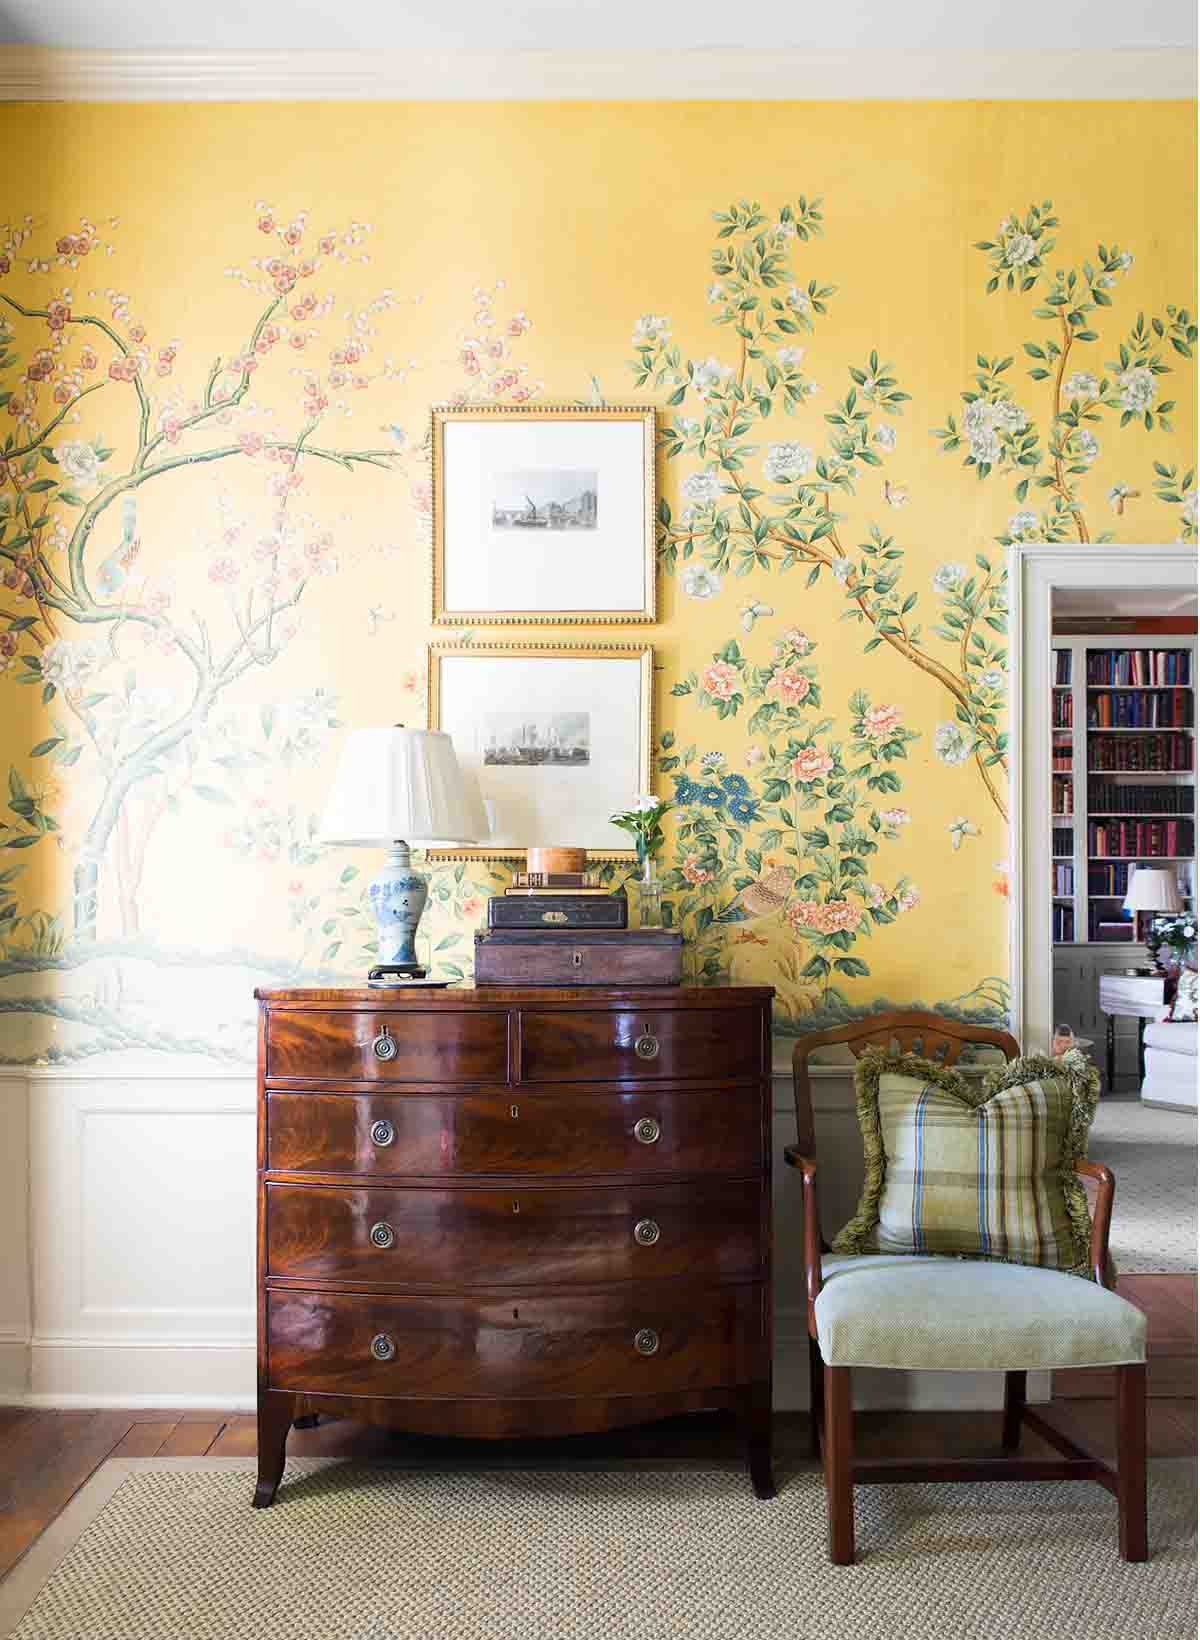 Antique Wallpaper - Historic Nashville Home - R.Higgins Interiors Design